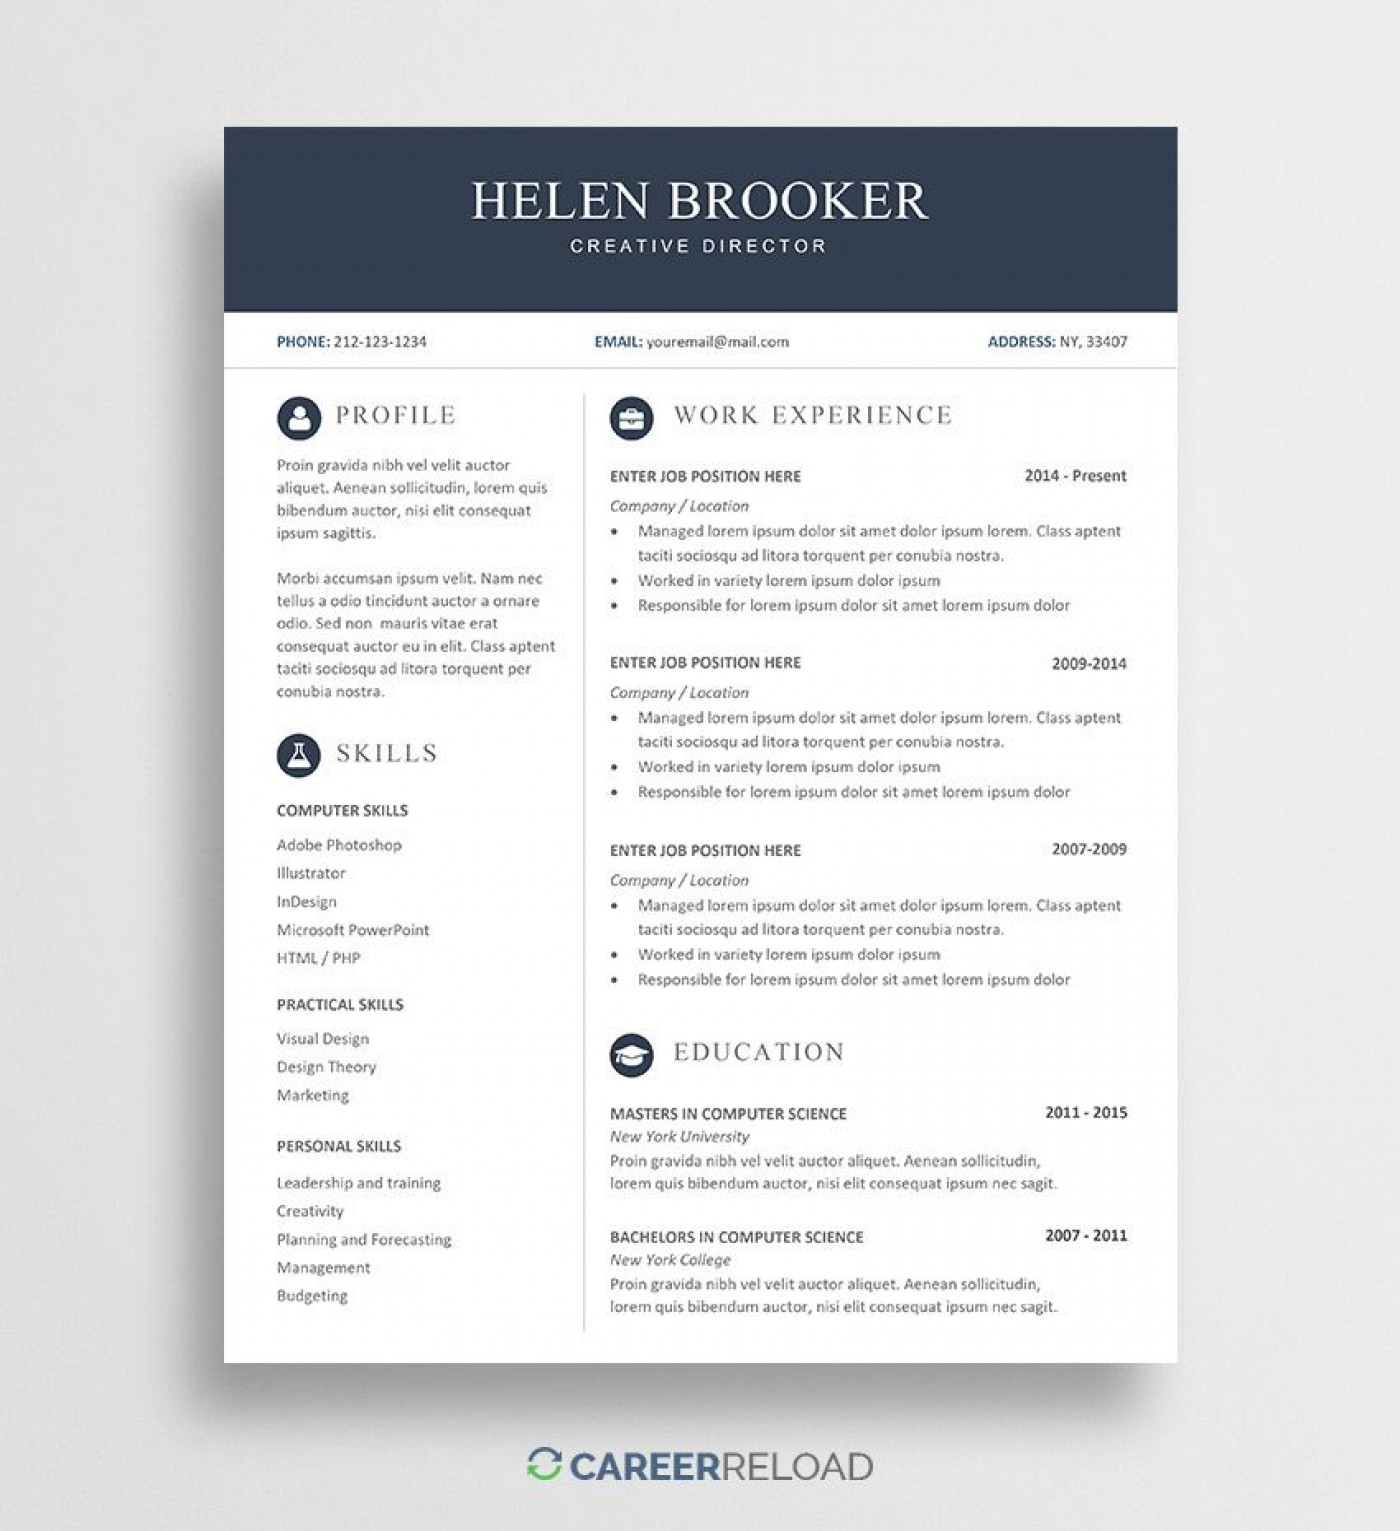 003 Incredible Download Resume Template Microsoft Word Photo  Free 2007 2010 Creative For Fresher1400